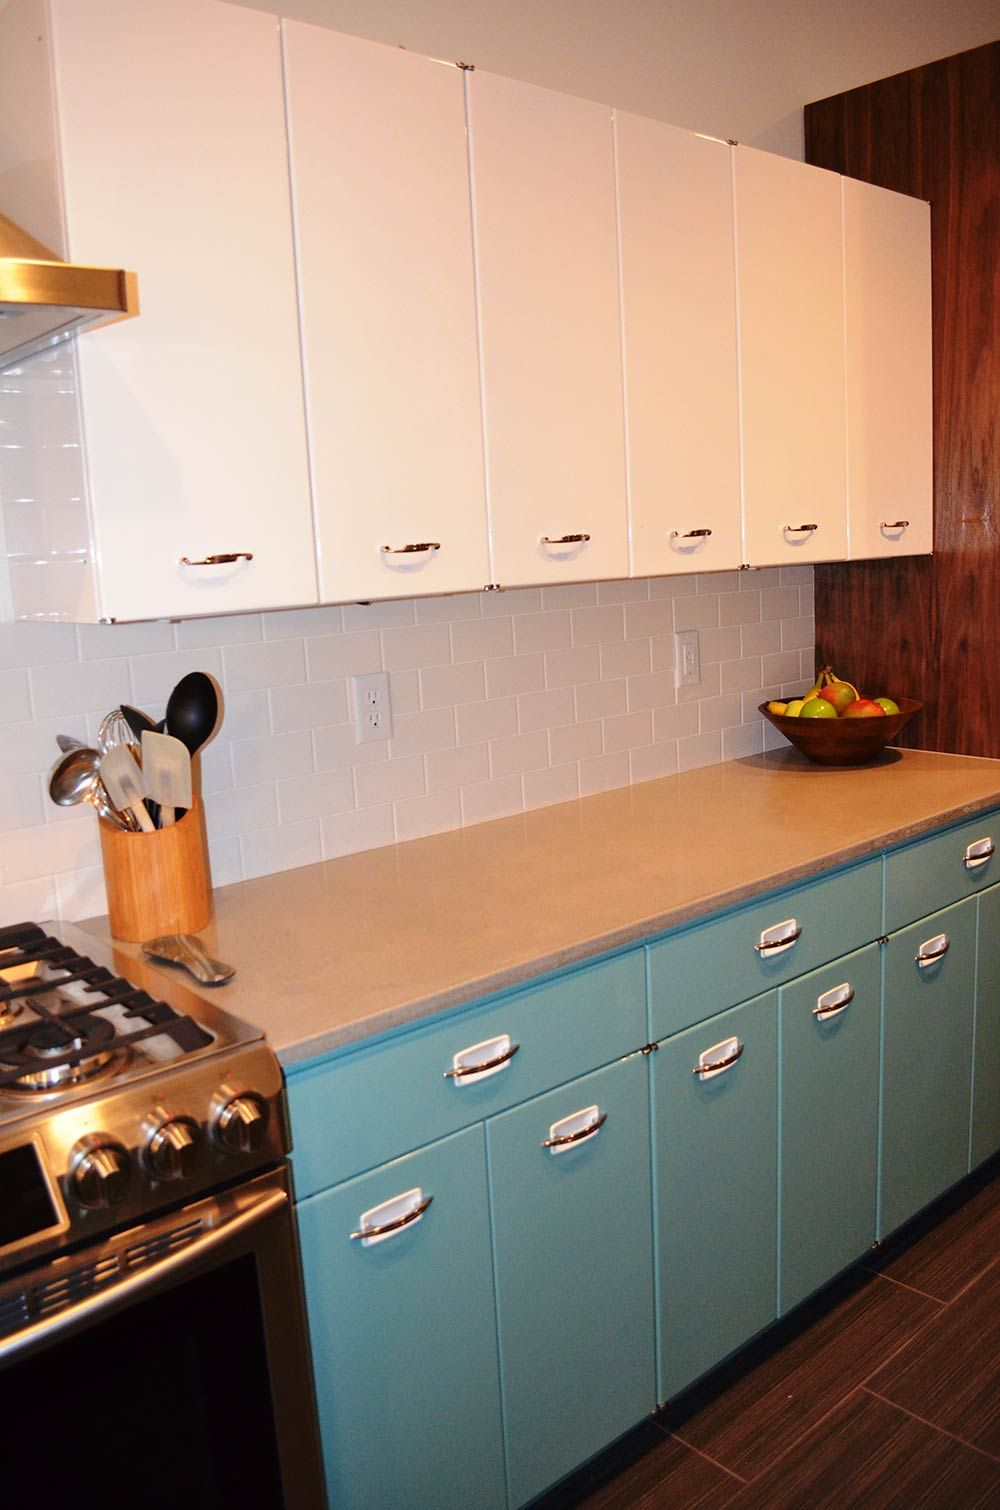 Sam Has A Great Experience With Powder Coating Her Vintage Steel Kitchen Cabinets In 2020 Aluminum Kitchen Cabinets Kitchen Cabinet Remodel Vintage Kitchen Cabinets